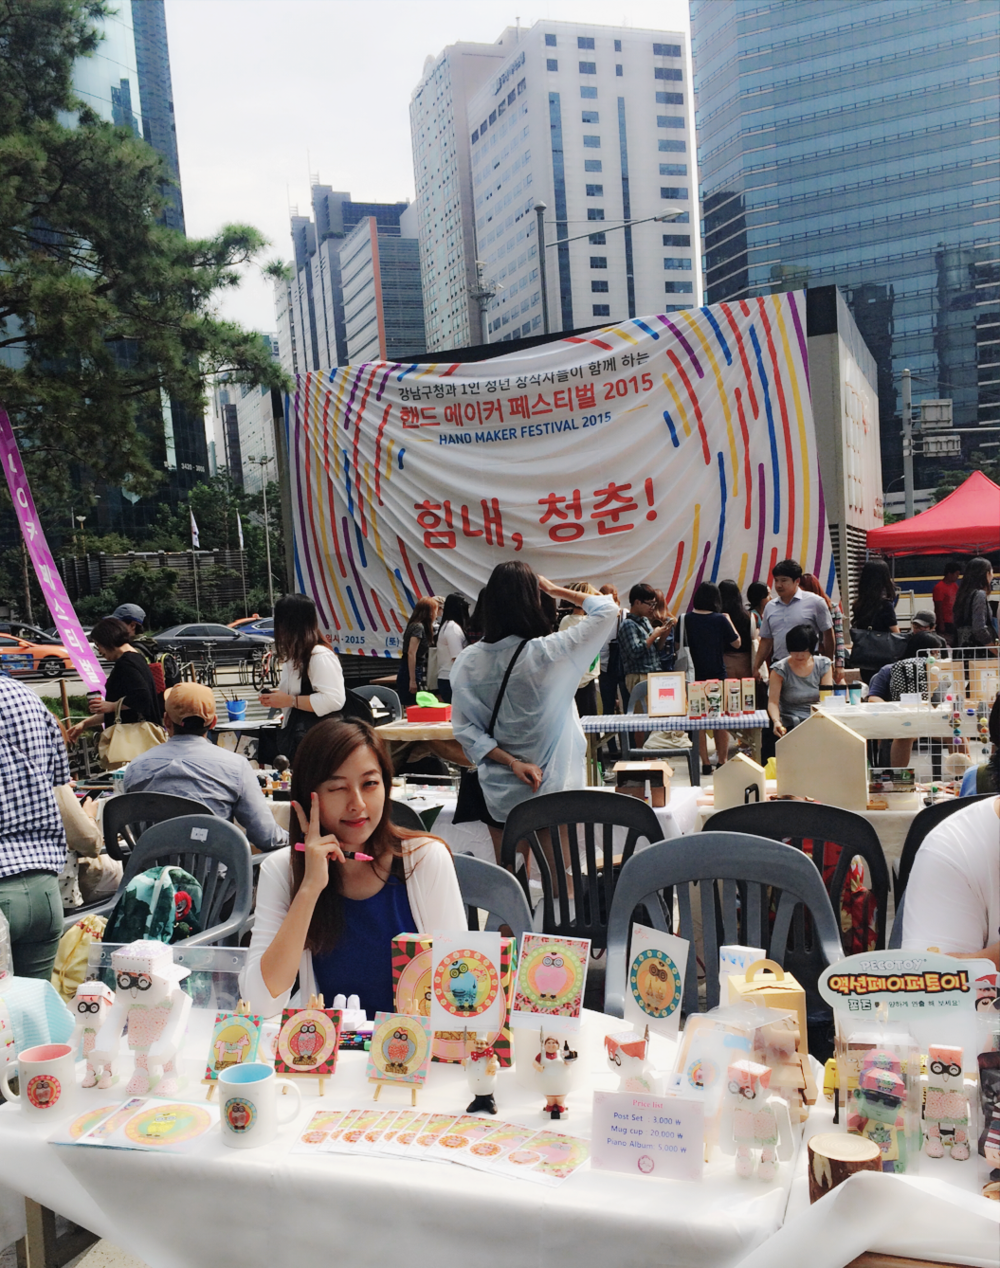 Hand Made Festival in GangNam